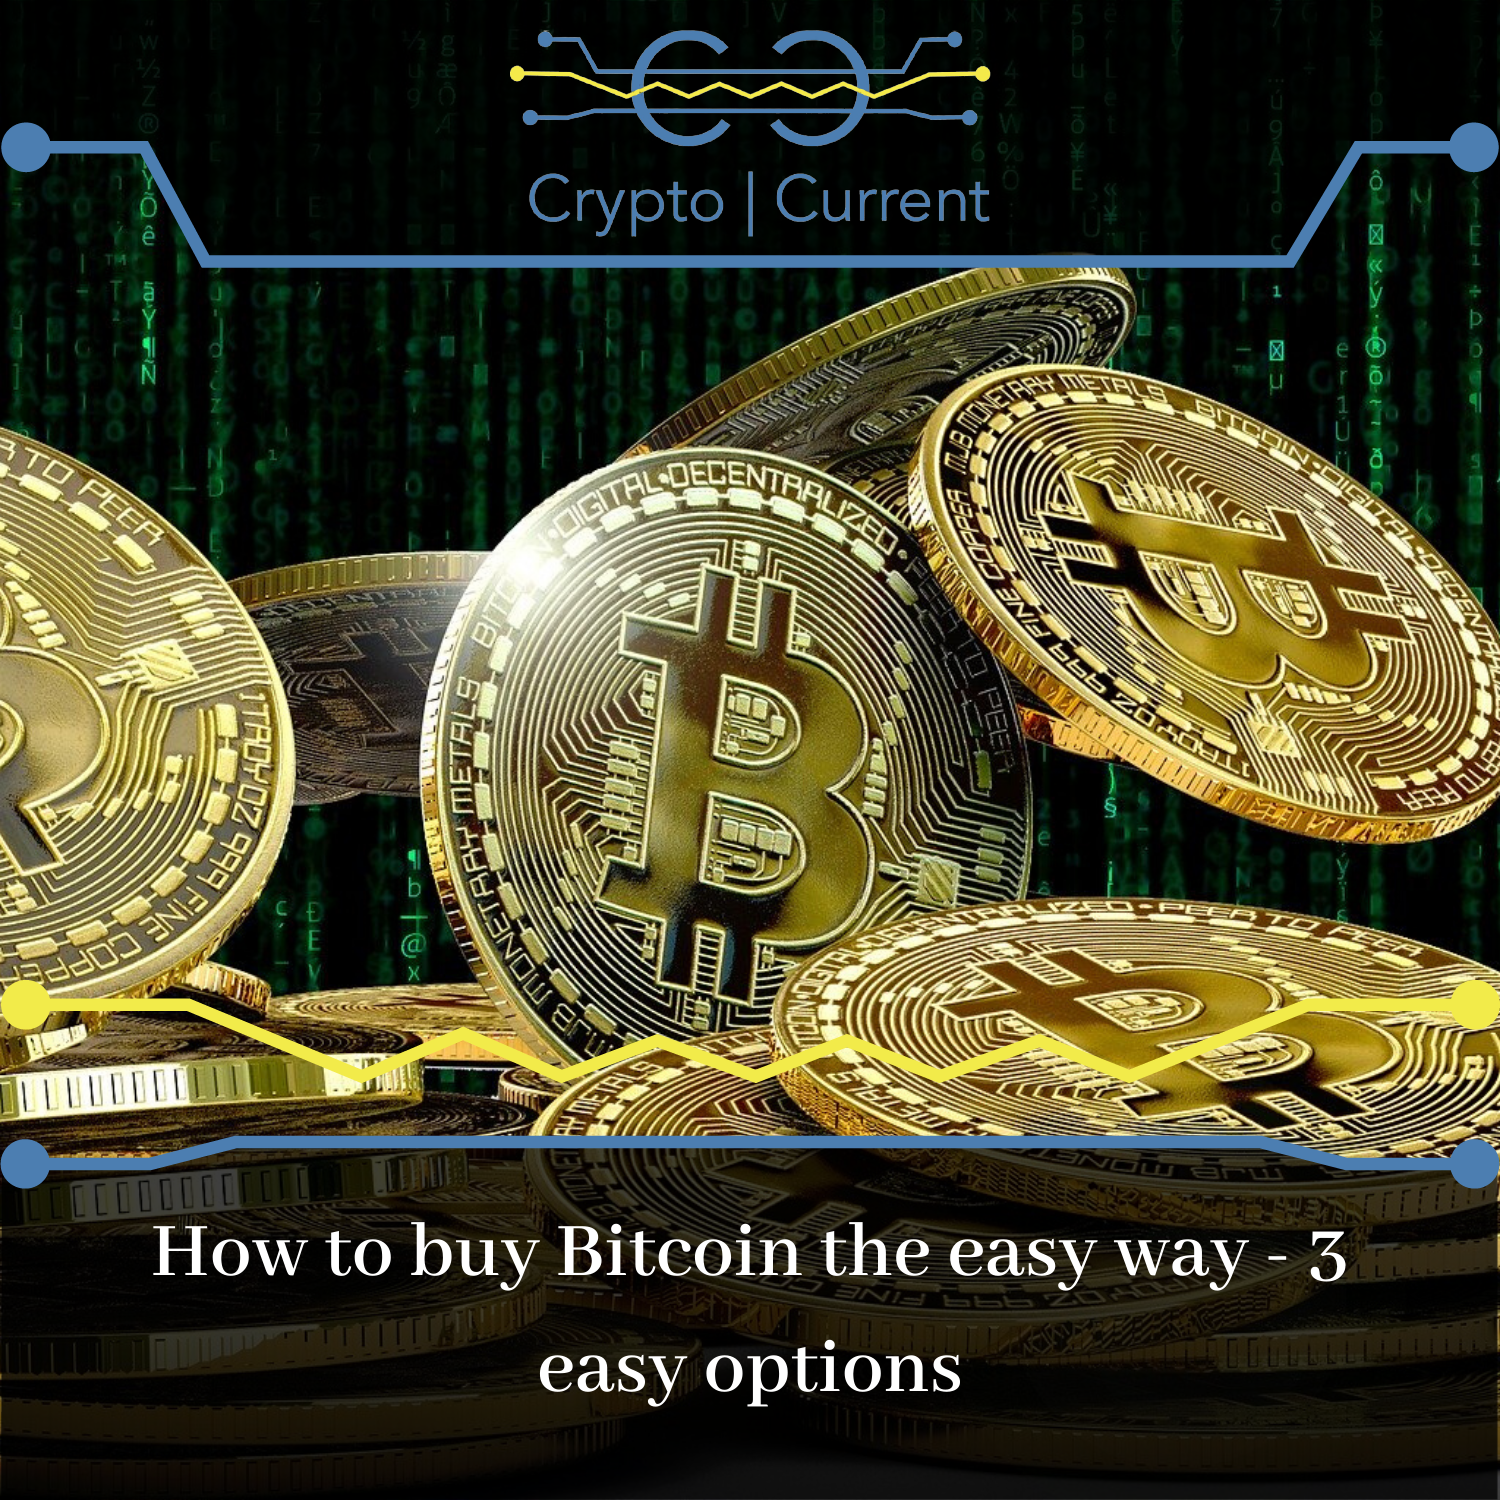 How to buy Bitcoin the easy way - 3 easy options